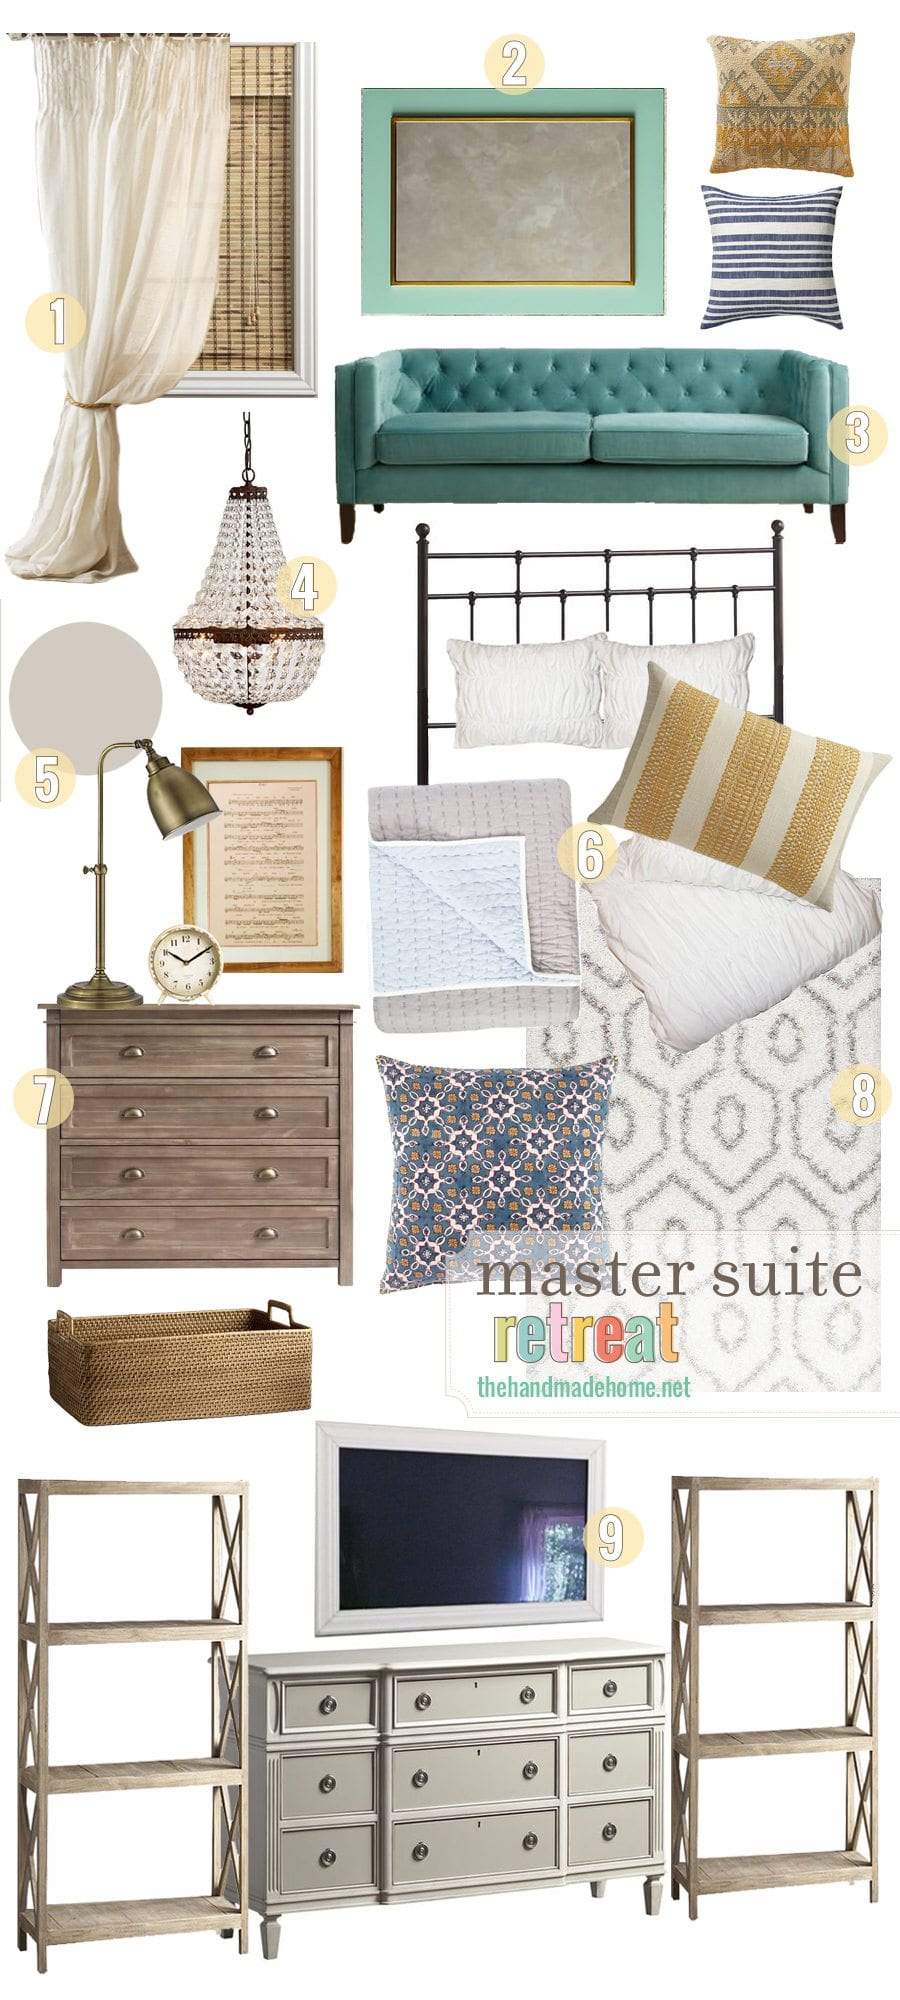 master_suite_retreat_ideas